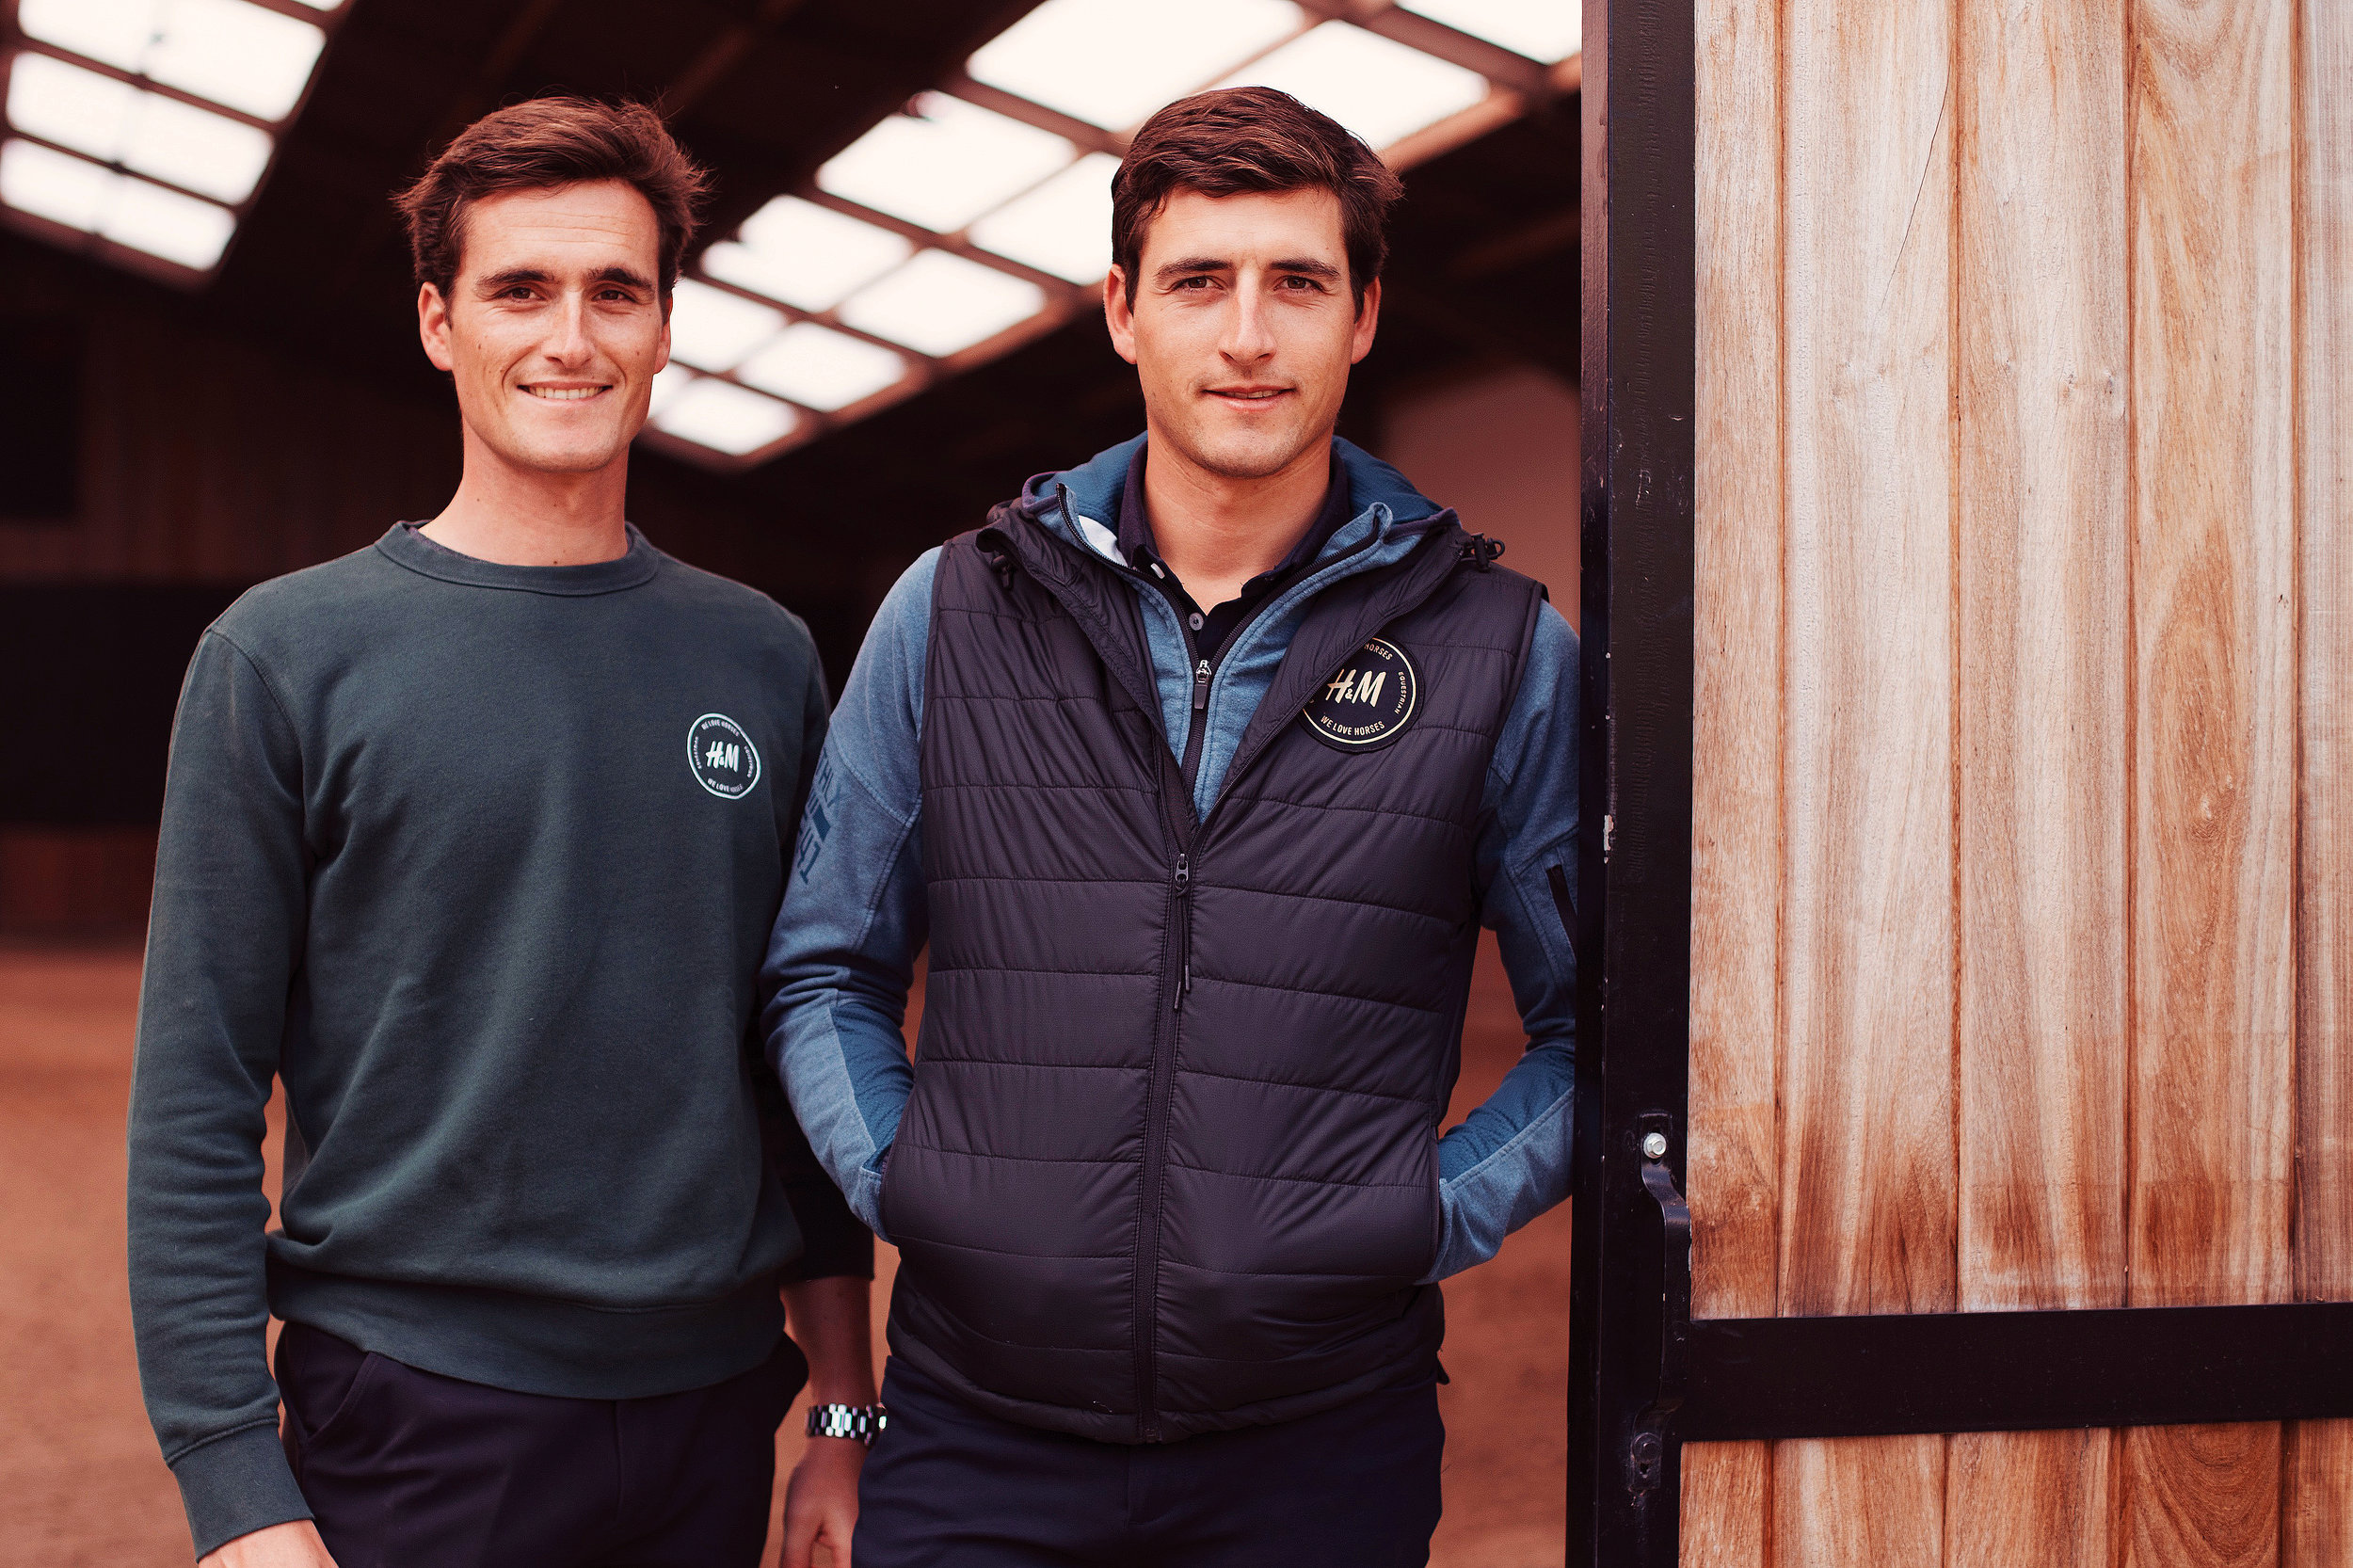 BEHIND THE MATCHING SHOW JACKETS: OLIVIER & NICOLA PHILIPPAERTS - The whole world of showjumping seems to be fascinated by the twins with the certain x-factor. But in between all the competitions and pressure, we can't help but wonder – what's behind the matching show jackets?